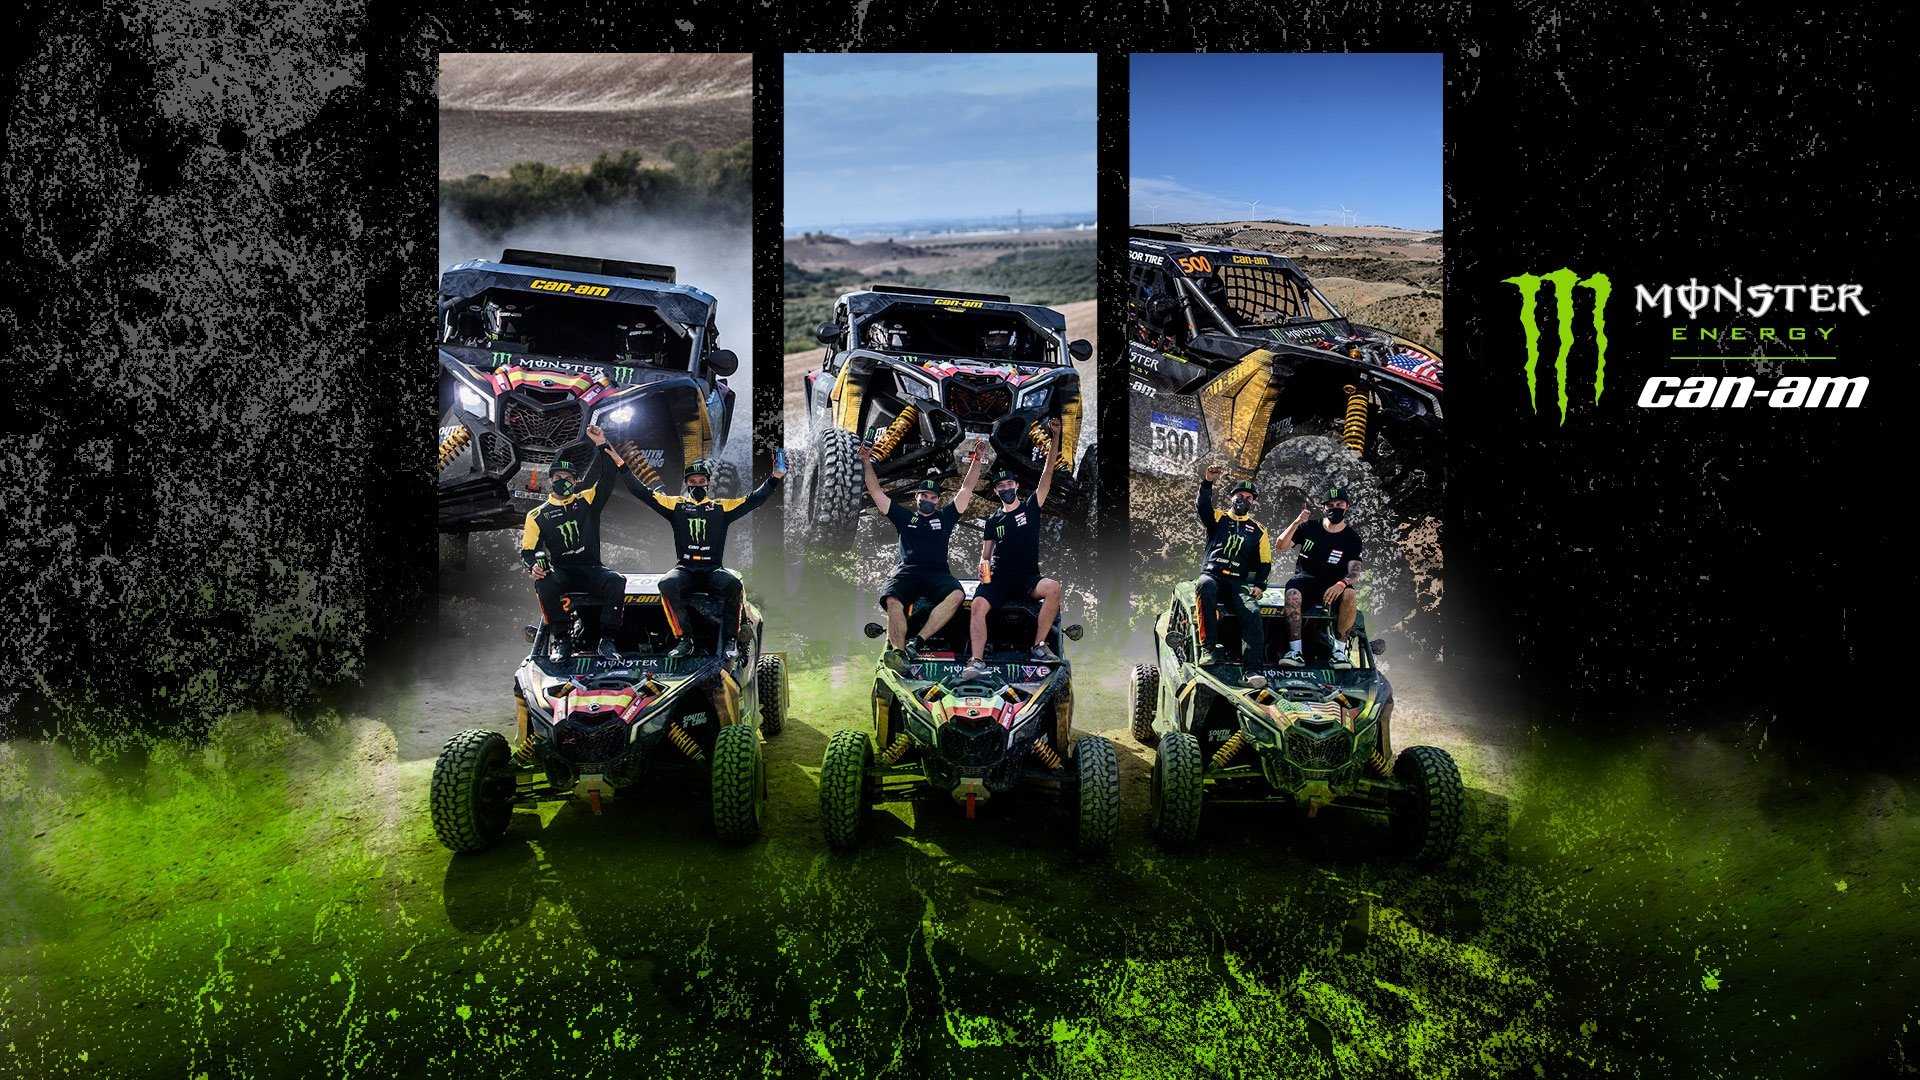 Team monster energy can-am en el curso dakar 2021